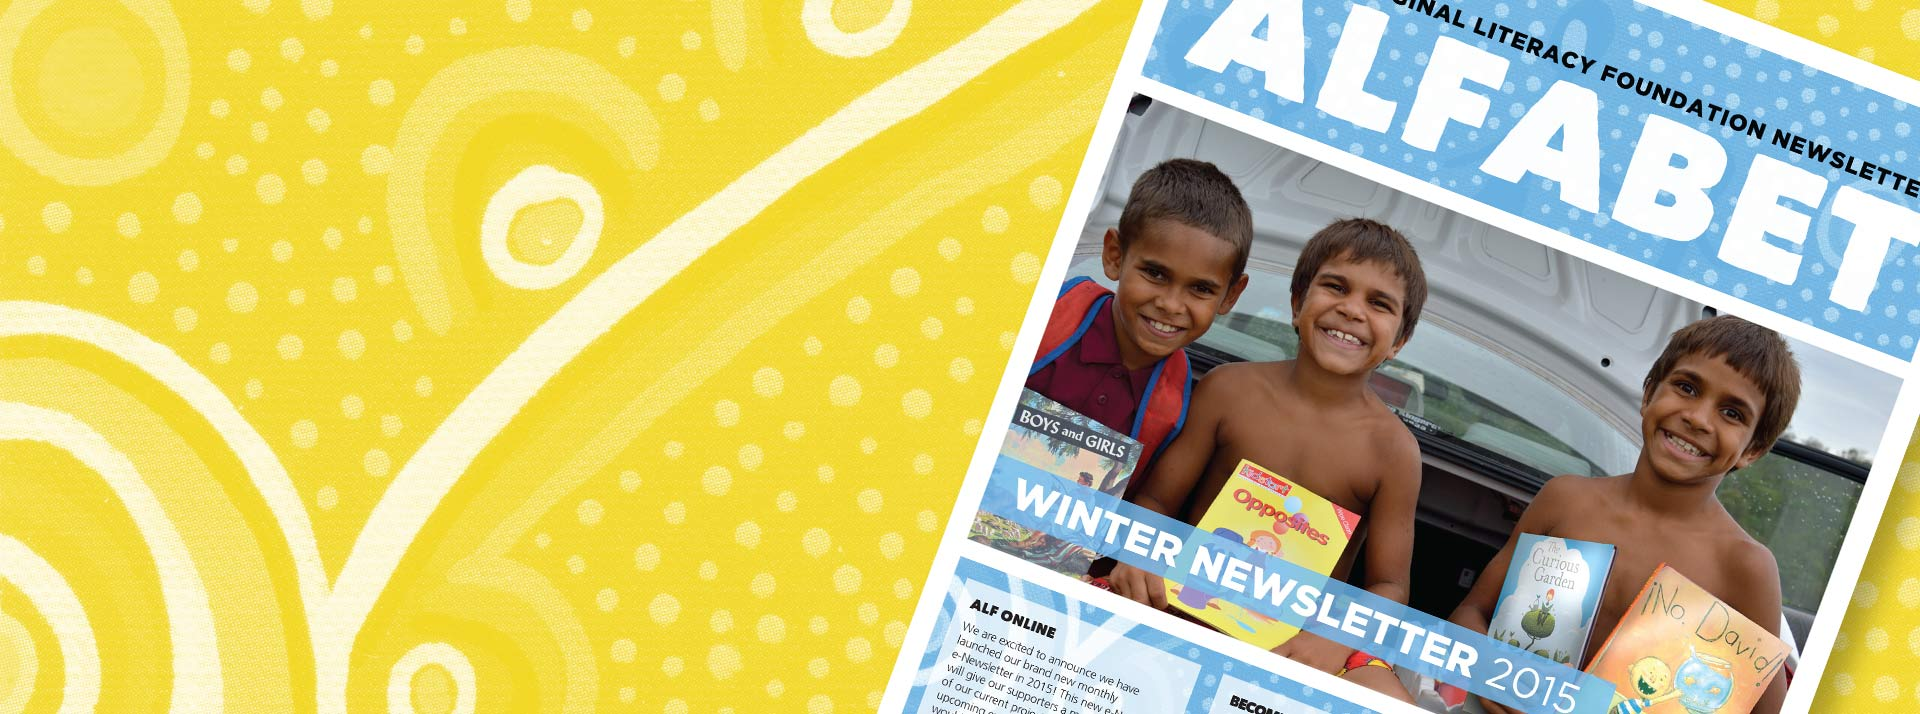 The ALF Winter Newsletter is online!